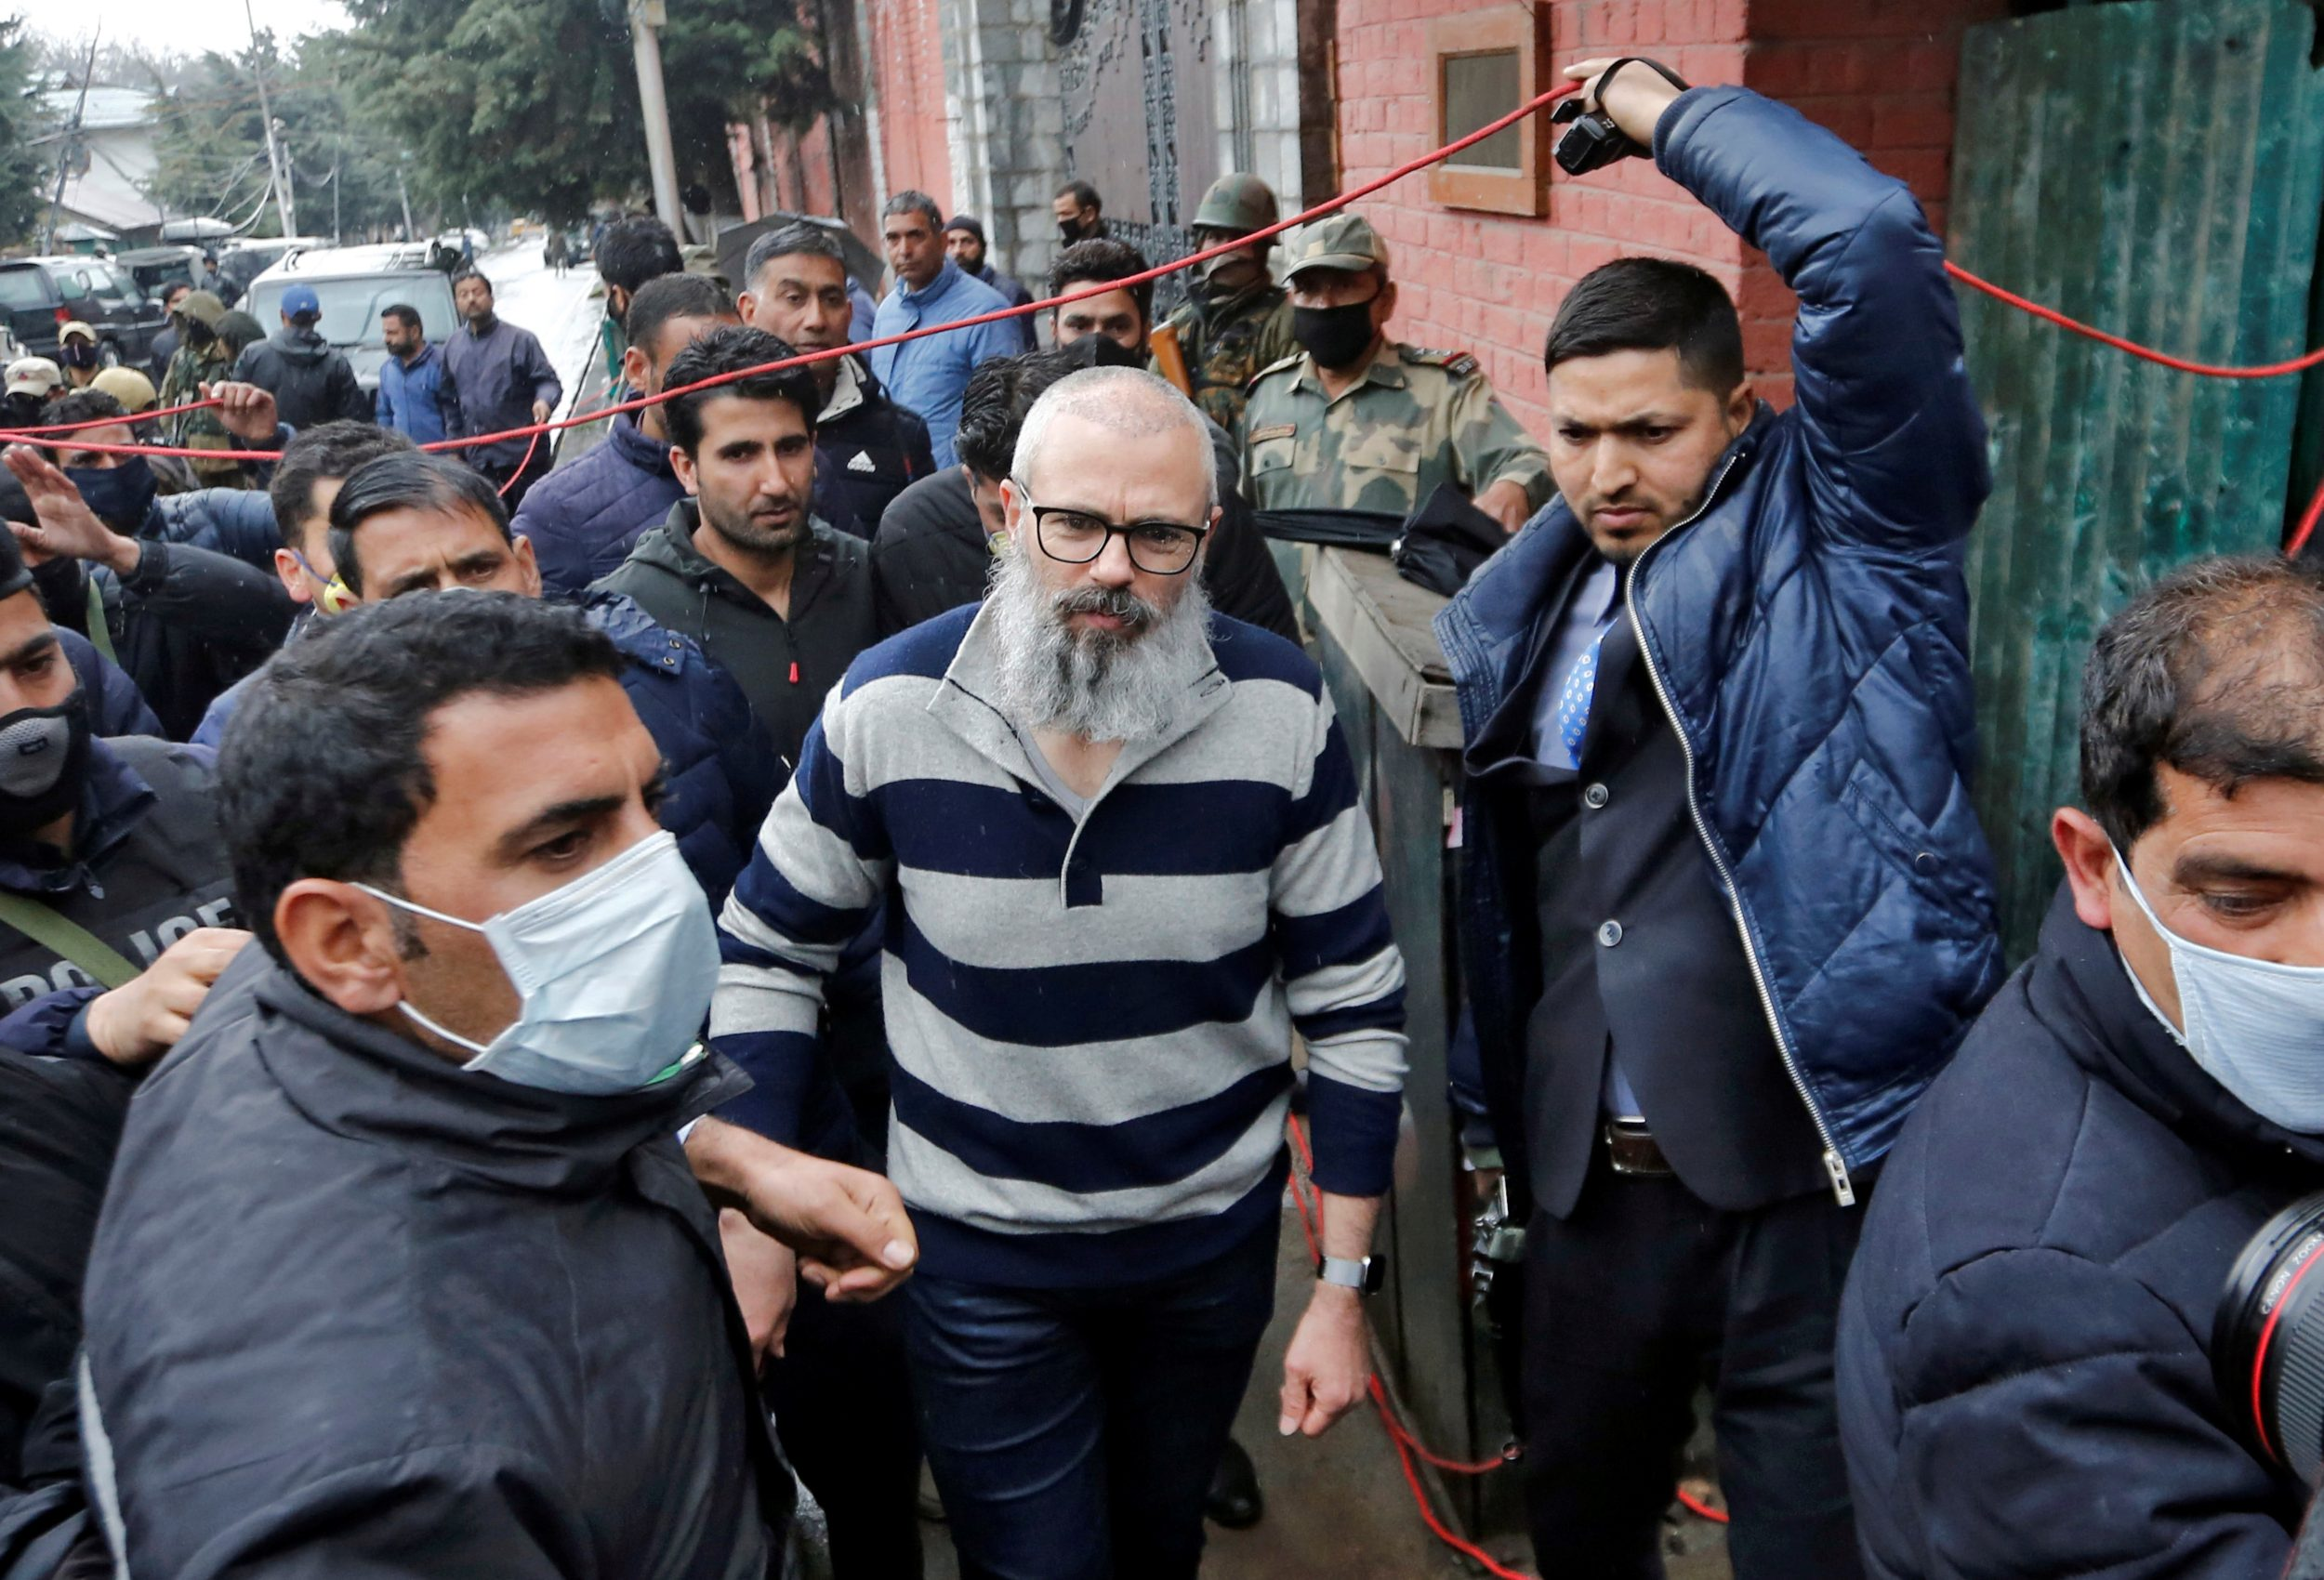 Omar Abdullah, former chief minister of Jammu and Kashmir, walks outside his residence following his release in Srinagar on 24 March 2020. He had been detained by Indian forces since August (Reuters)